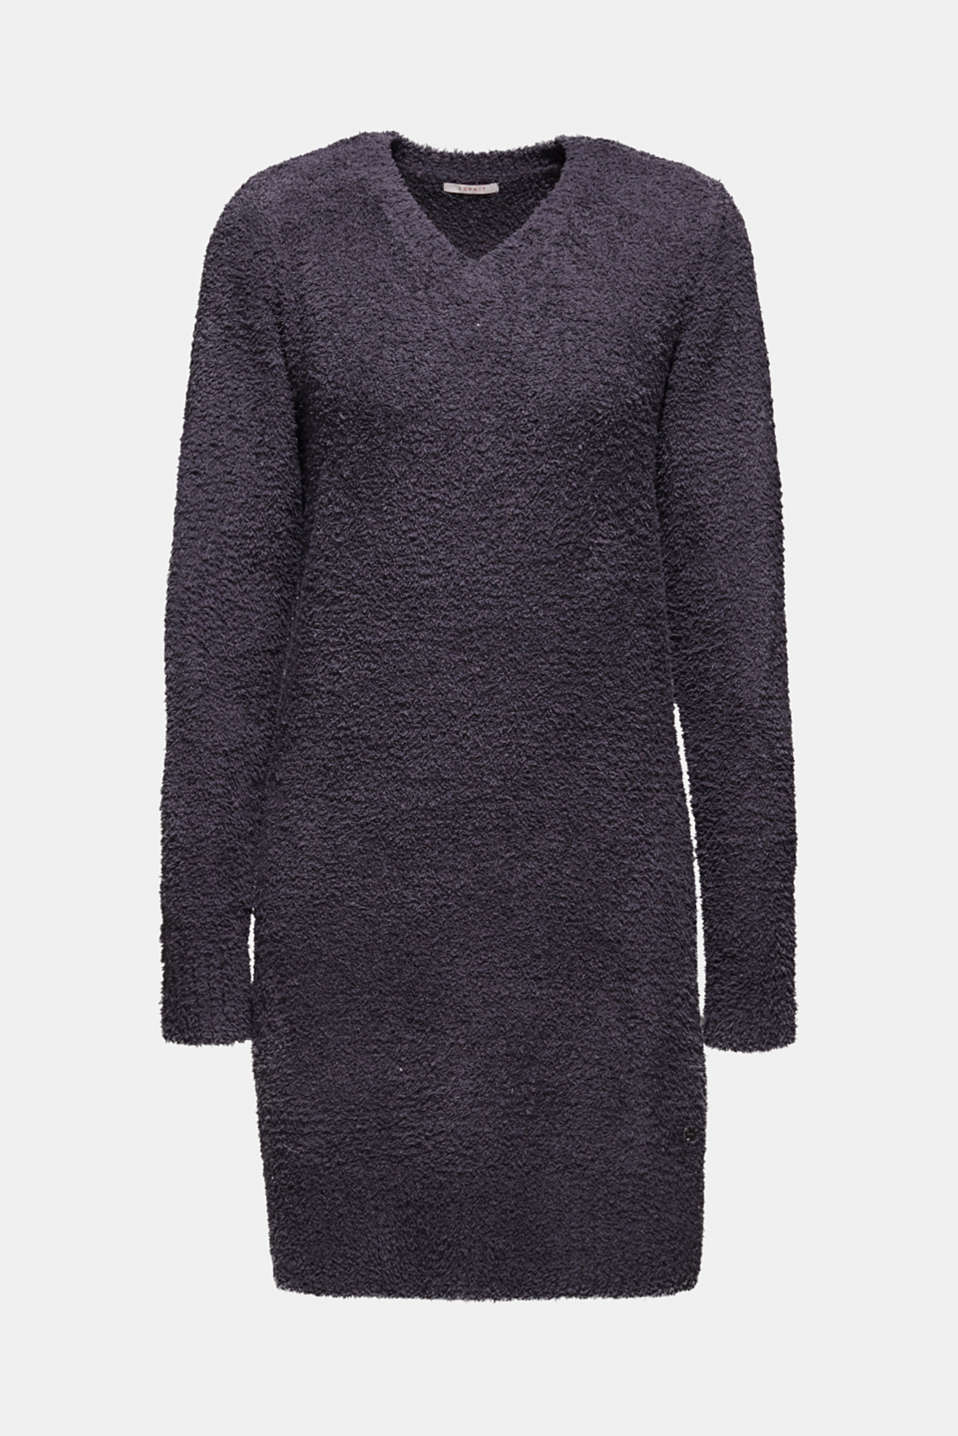 Soft home dress in a plush look, DARK GREY, detail image number 3